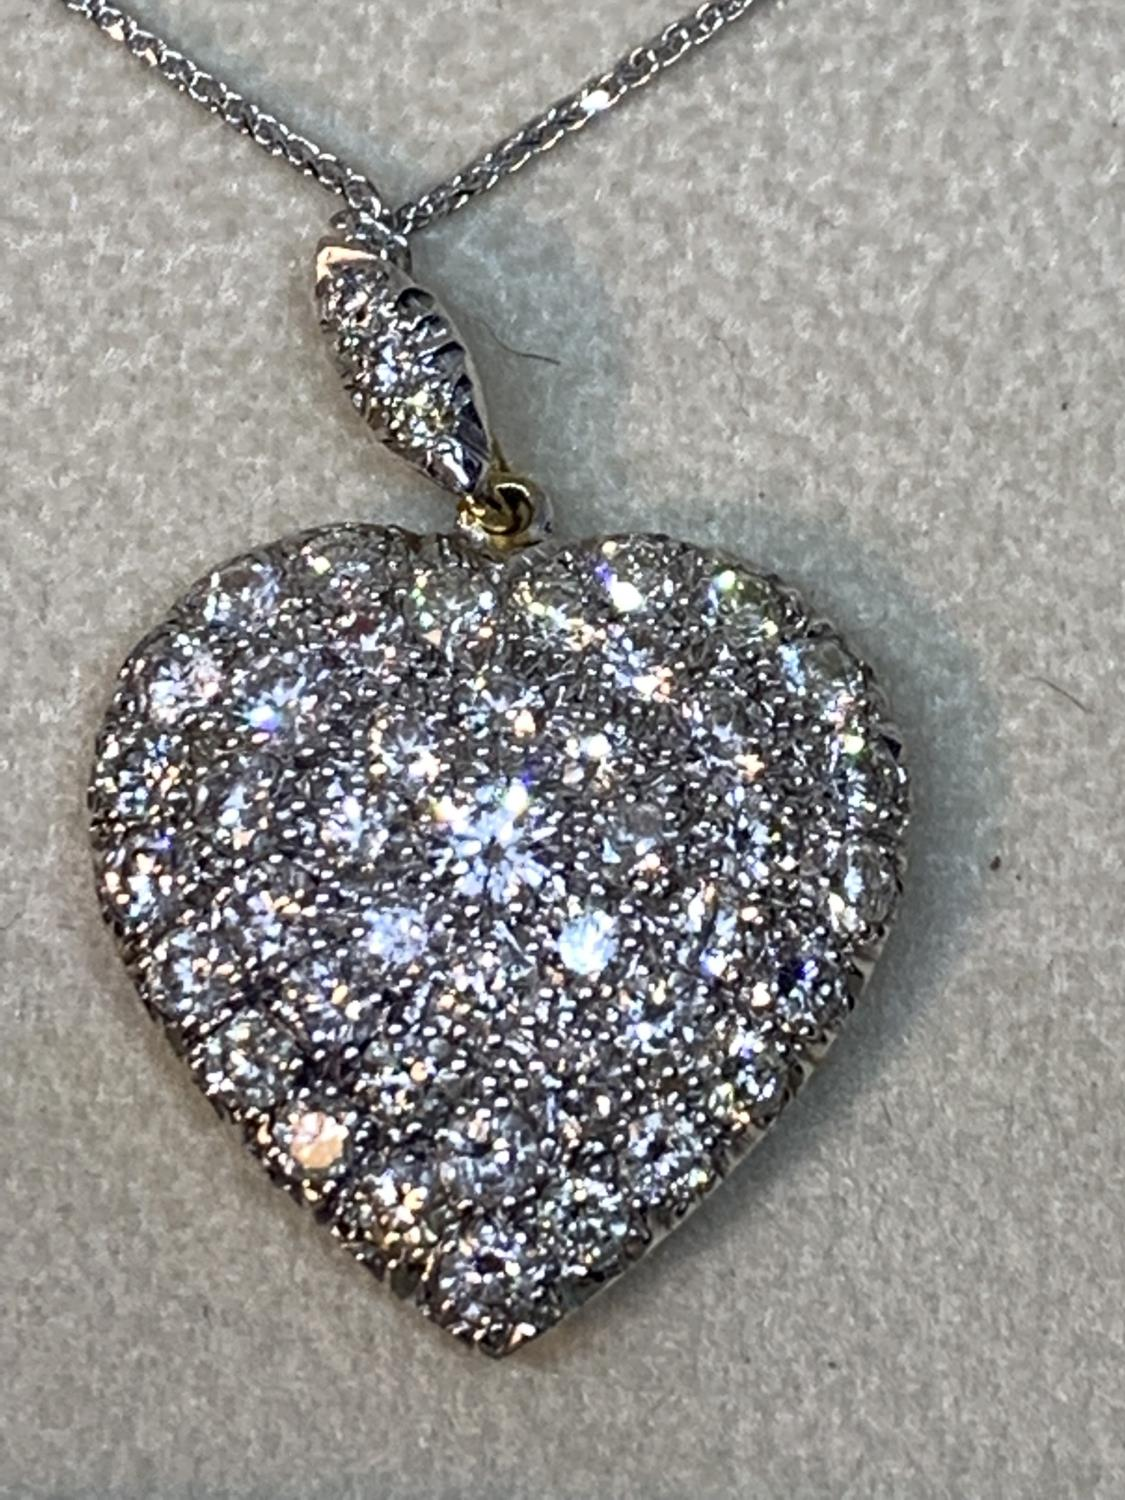 A 15 CARAT WHITE AND YELLOW GOLD LARGE DIAMOND ENCRUSTED HEART PENDANT WITH CHAIN LENGTH 44CM IN A - Image 7 of 8